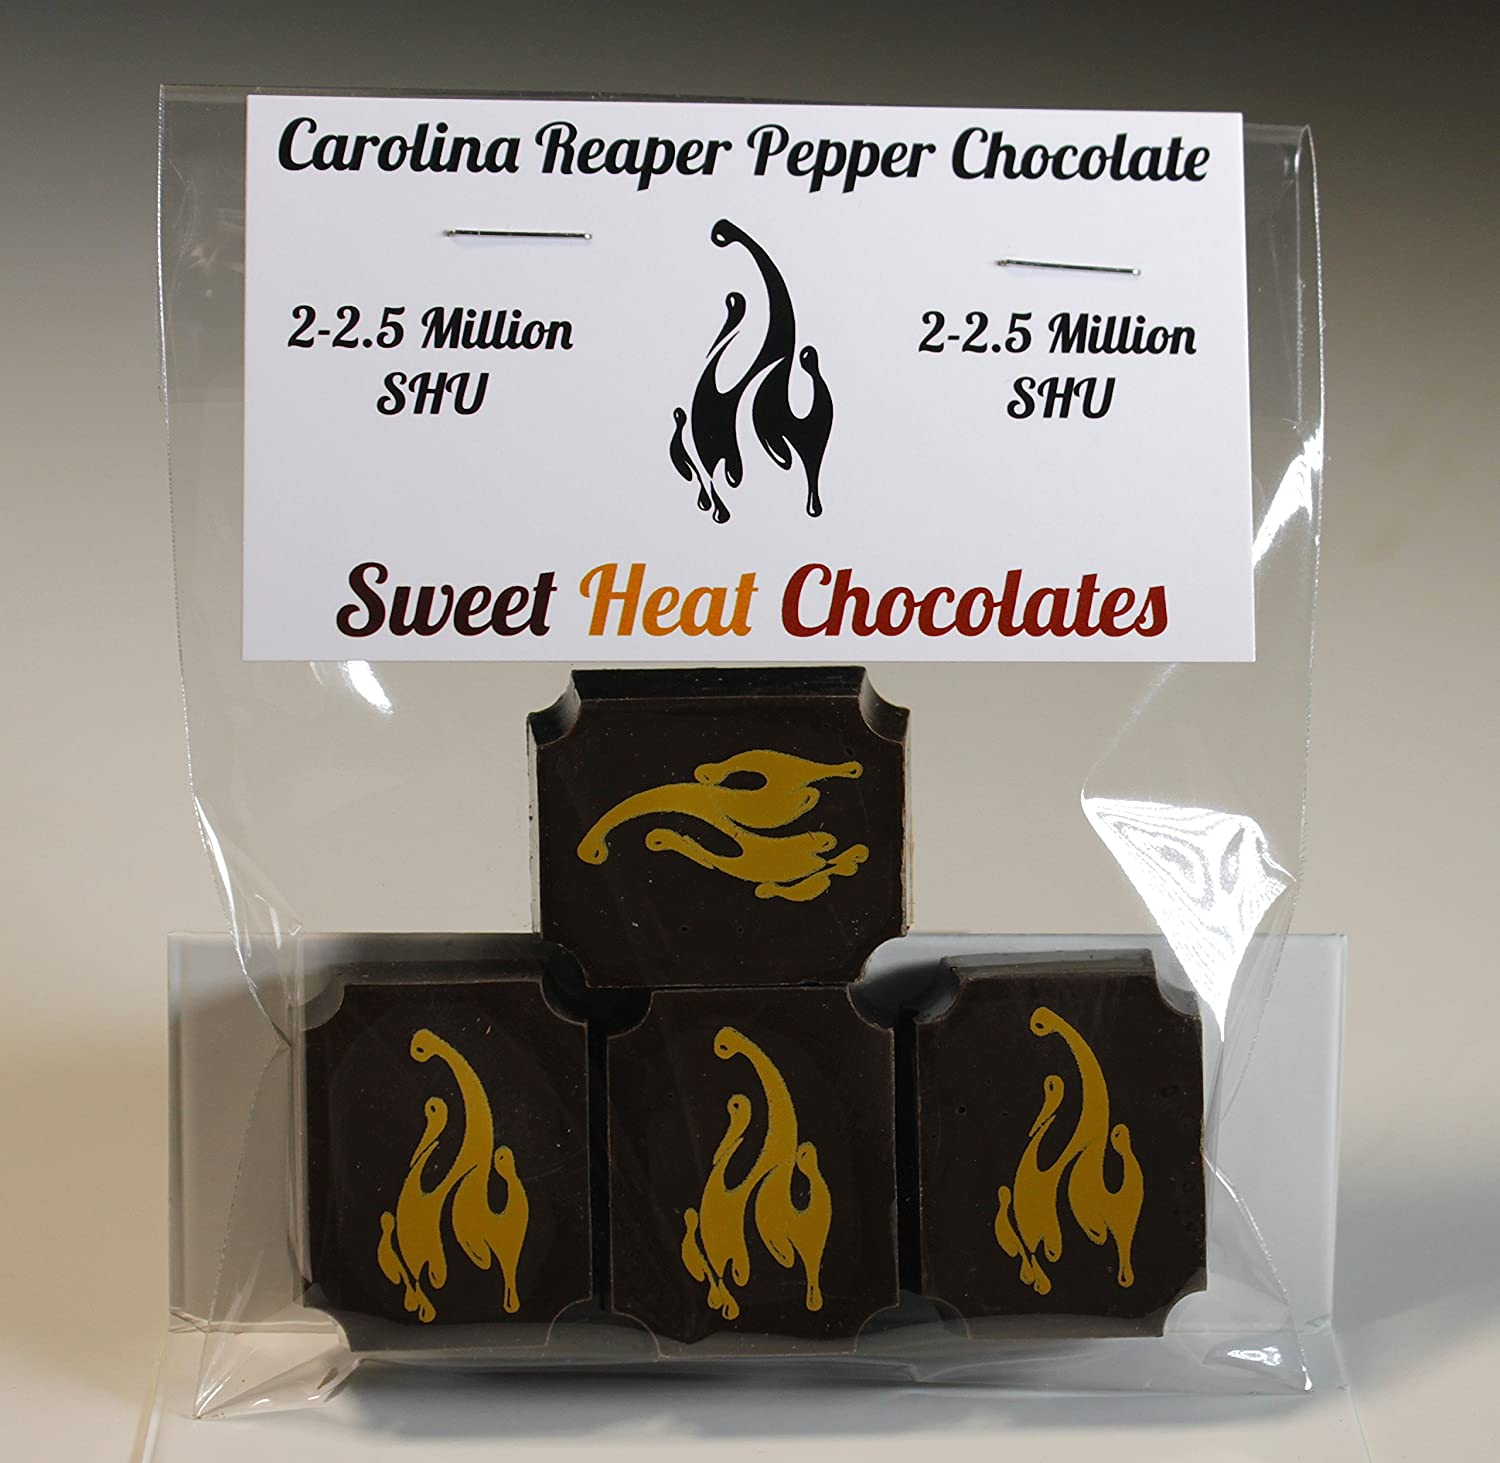 Carolina Reaper Pepper Dark Chocolate 4pc